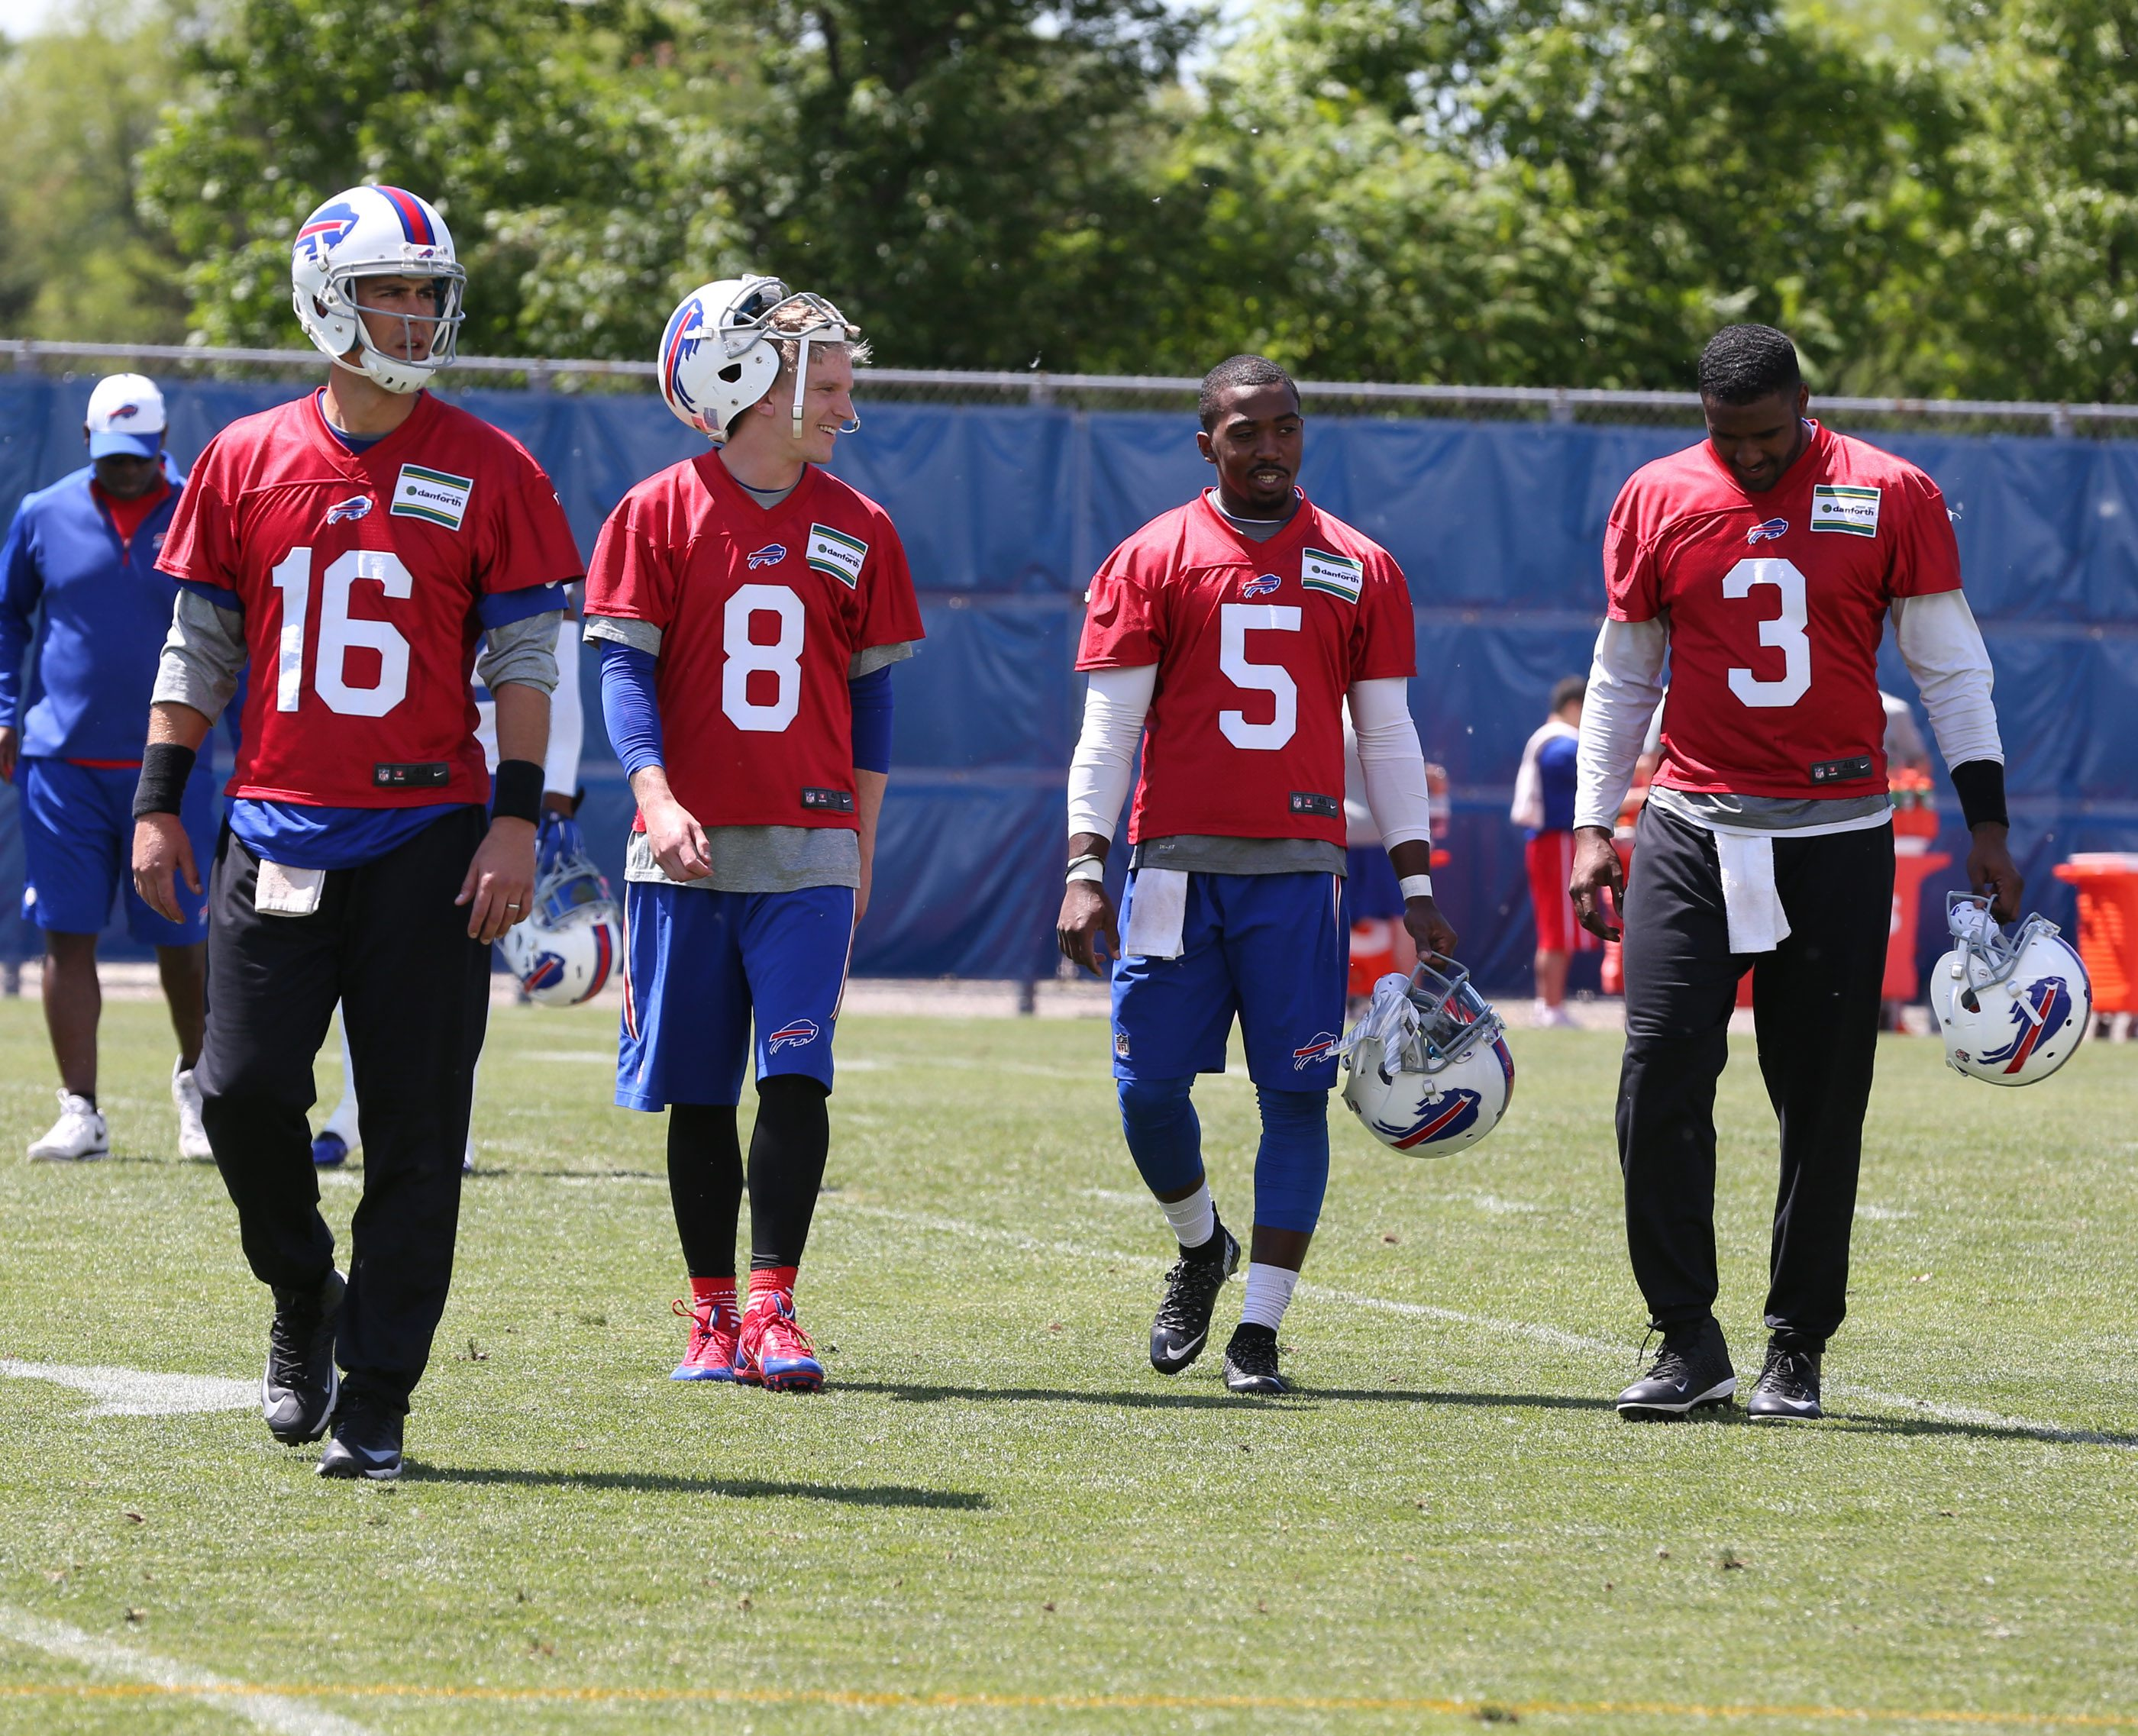 Expect the Buffalo Bills to select a starting quarterback from the training camp quintet of Matt Cassel, Matt Simms, Tyrod Taylor and EJ Manuel instead of bringing in more new arms.